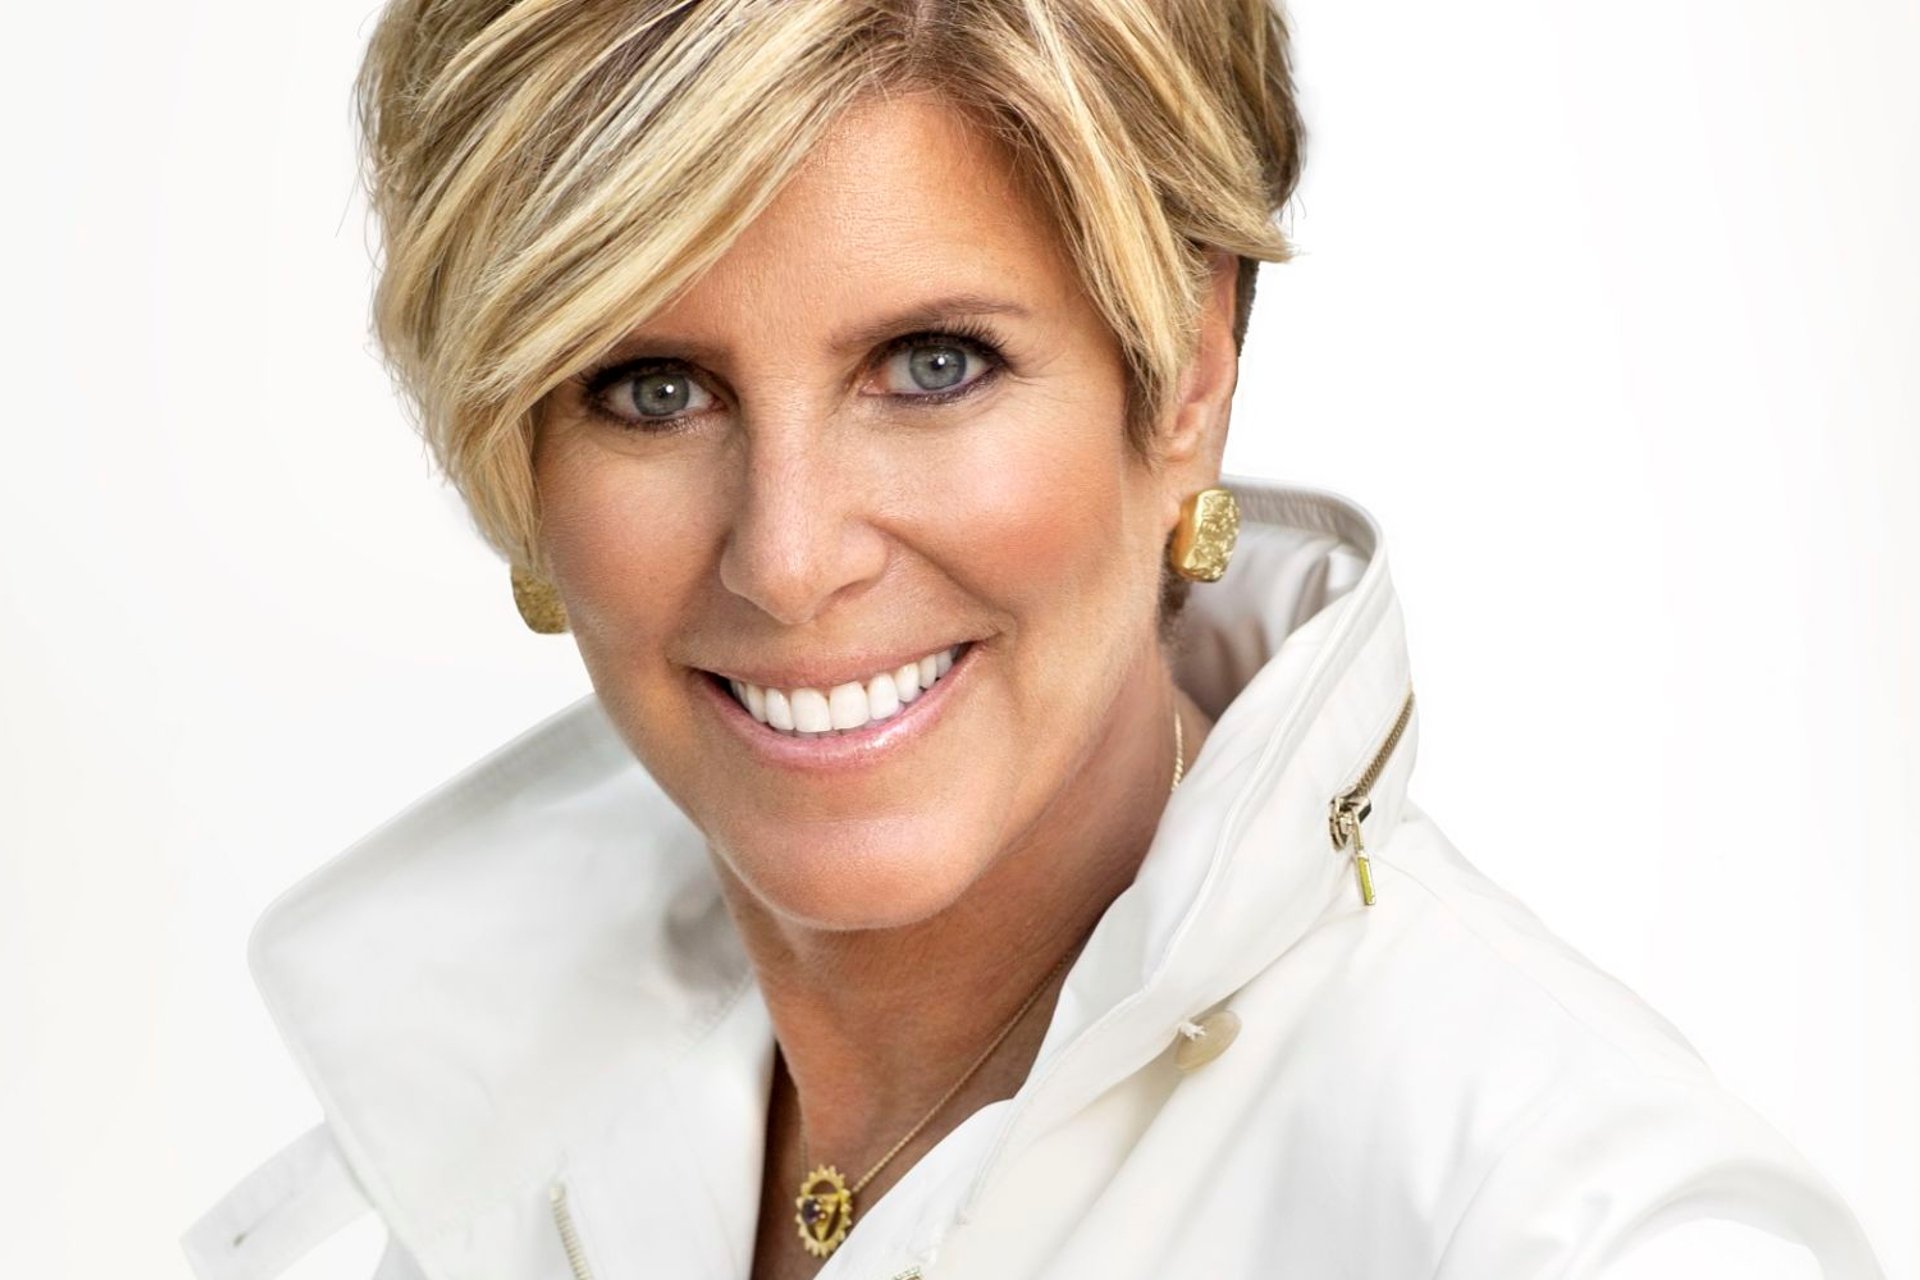 'It's not rocket science': Suze Orman